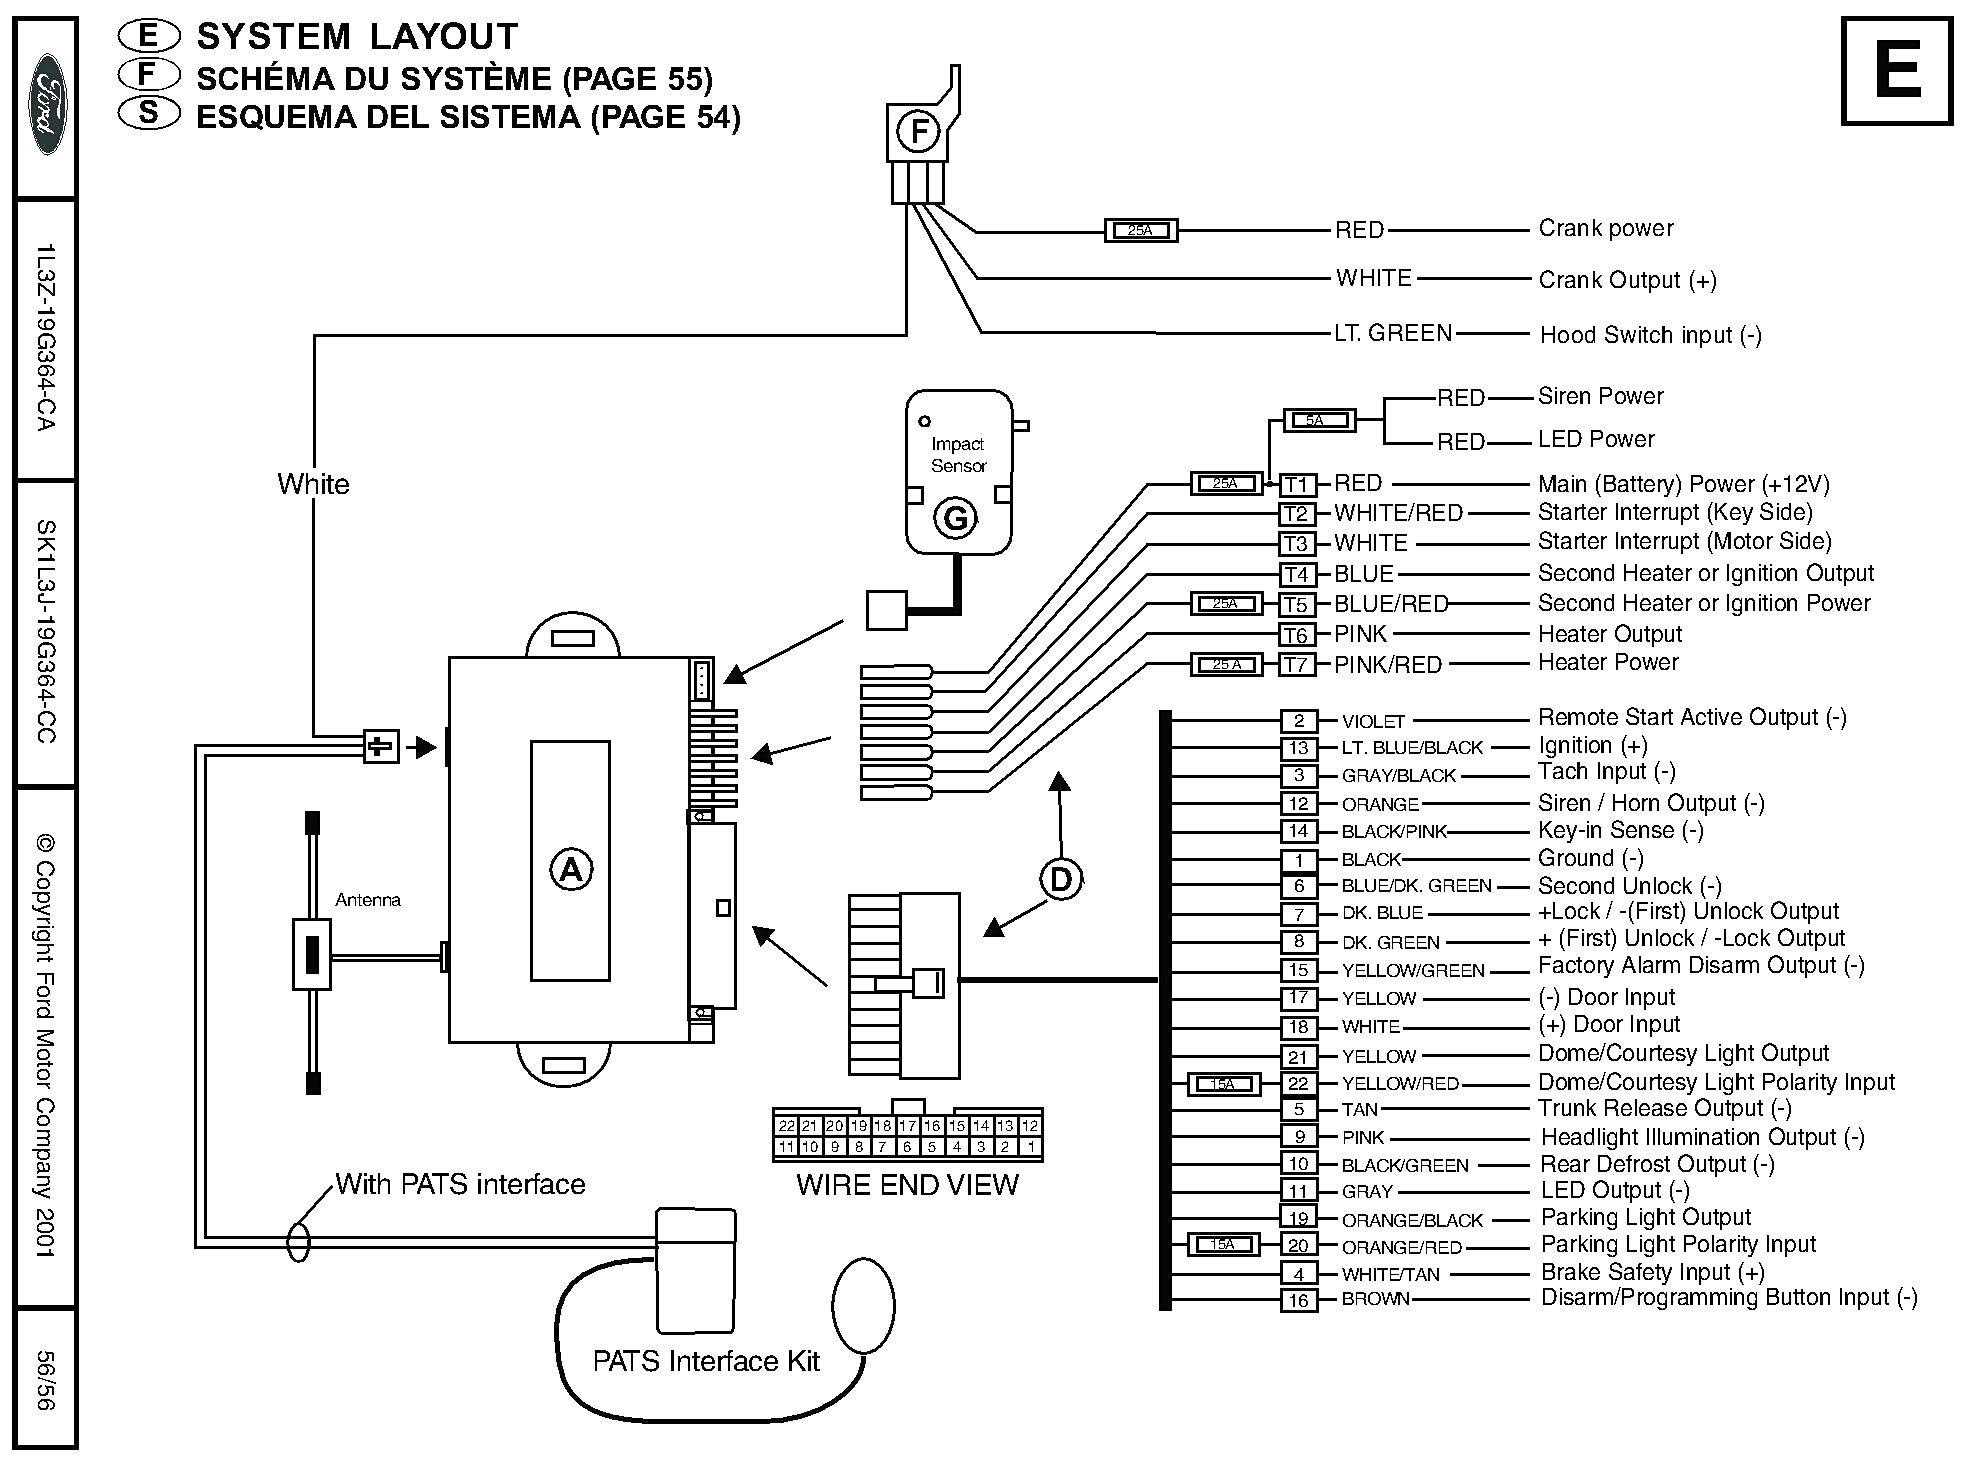 Car Alarm System Wiring Diagram Car Security System Wiring Diagram New Motorcycle Alarm System Of Car Alarm System Wiring Diagram